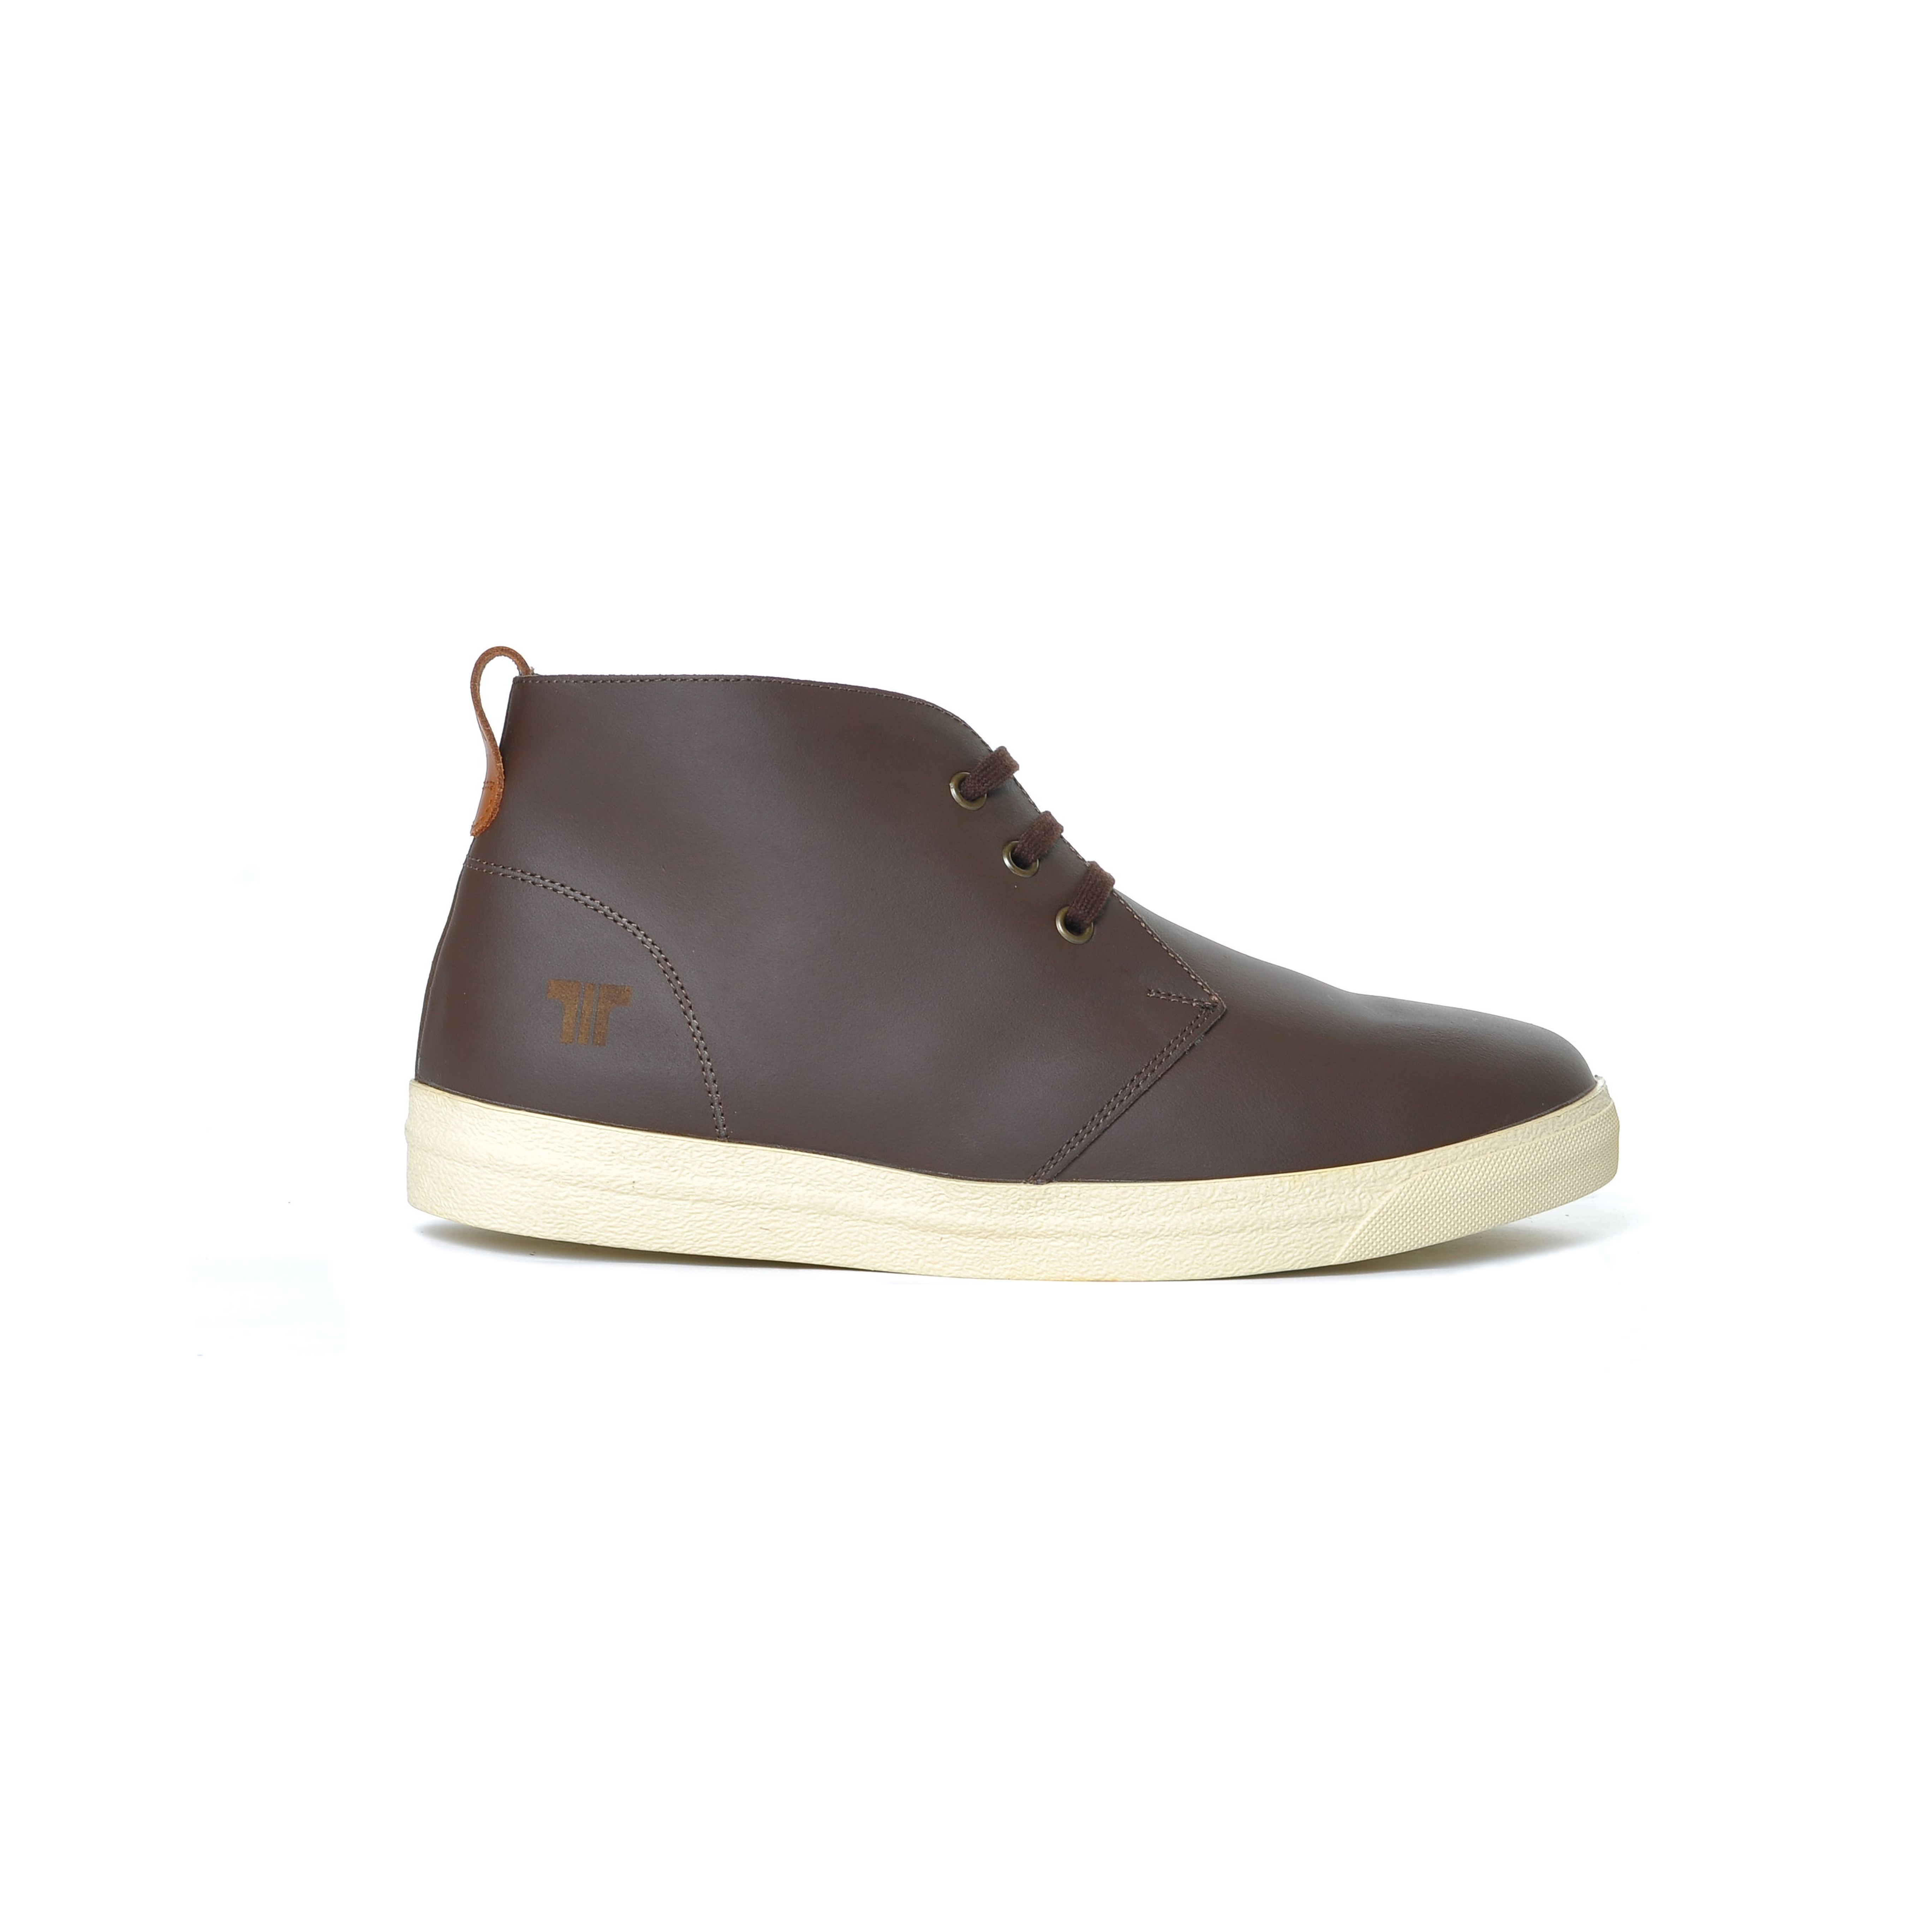 Tisza shoes - Alfa - Brown-tobacco padded